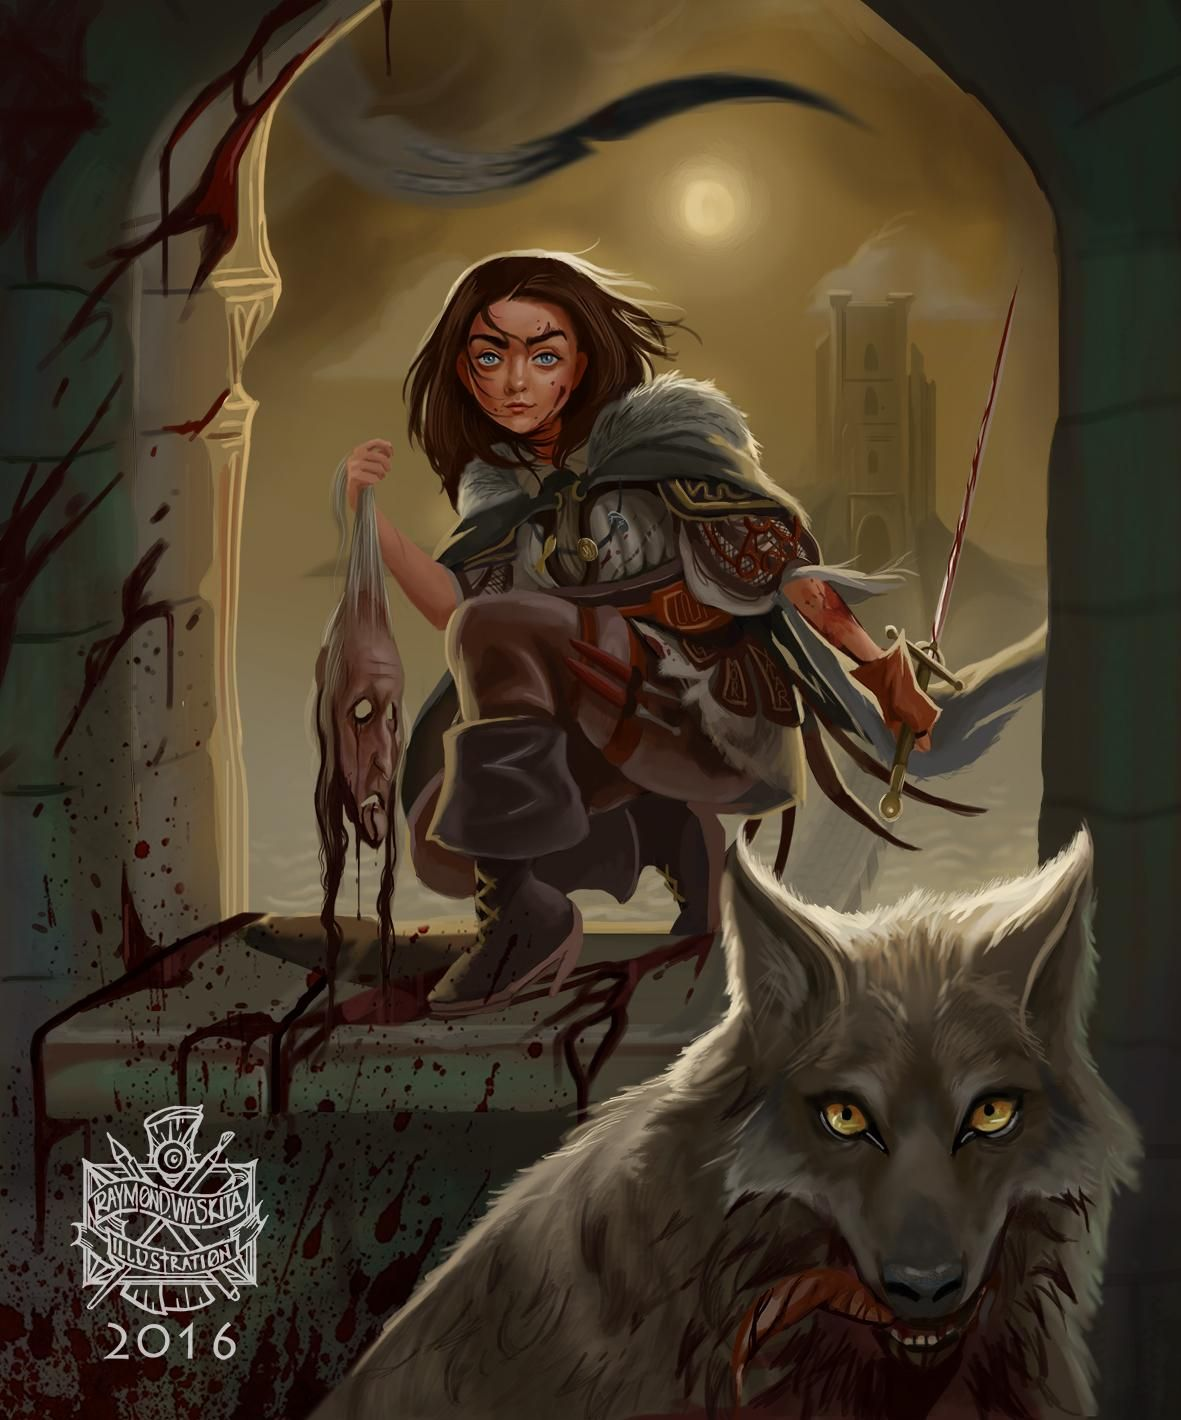 Warriors Fire And Ice Ar Points: The Starks Sends Their Regards: Badass Arya & Nymeria